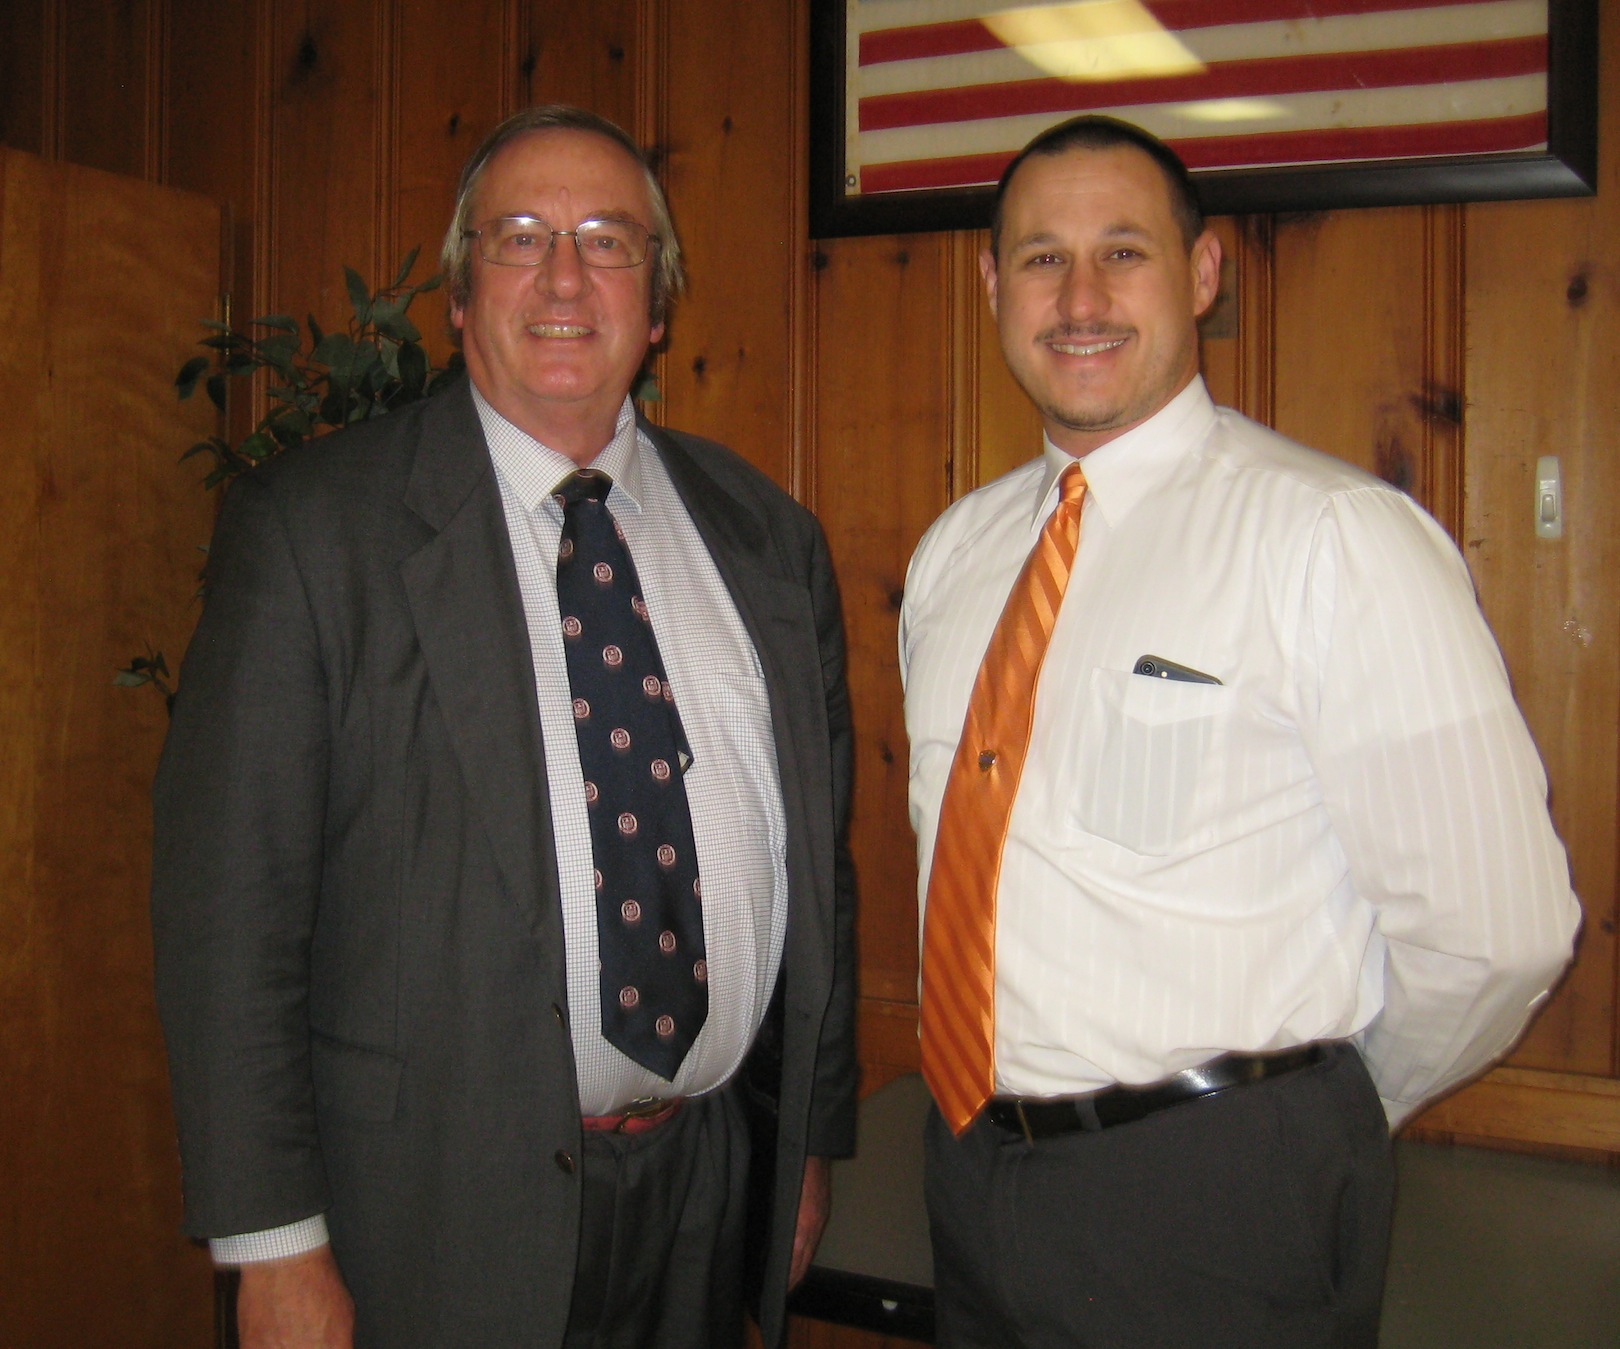 From left, Jim Bittner of Bittner Singer Orchards, and John King, who was elected the new president of the Niagara County Farm Bureau. (Submitted photo)